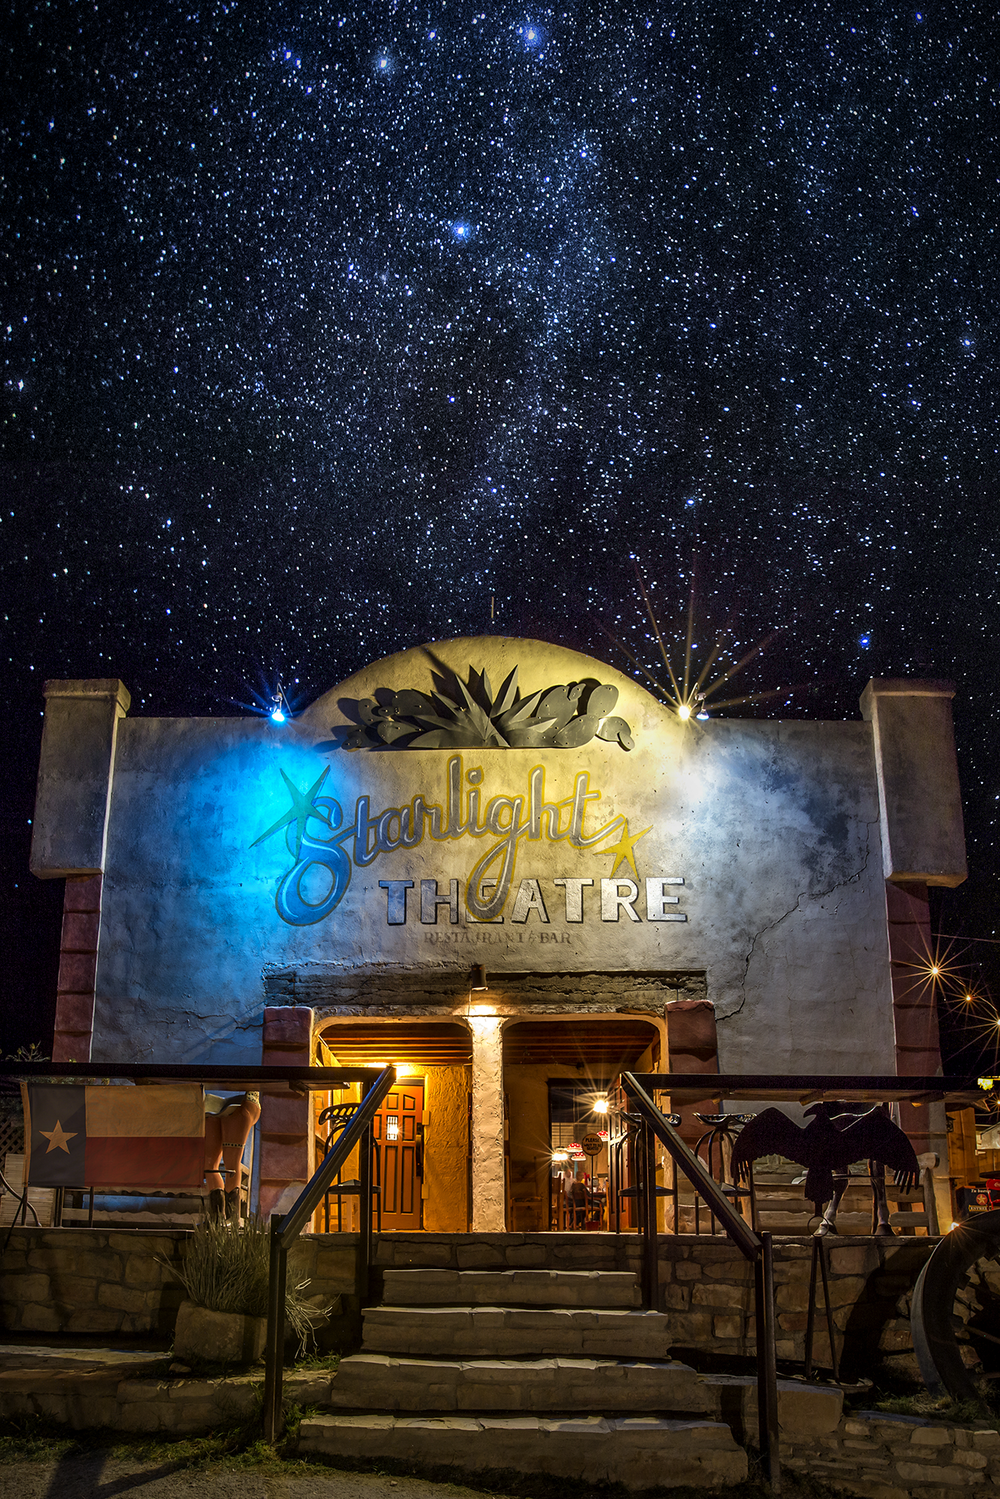 2017 astrophotography workshop big bend terlingua texas milky way starlight theatre